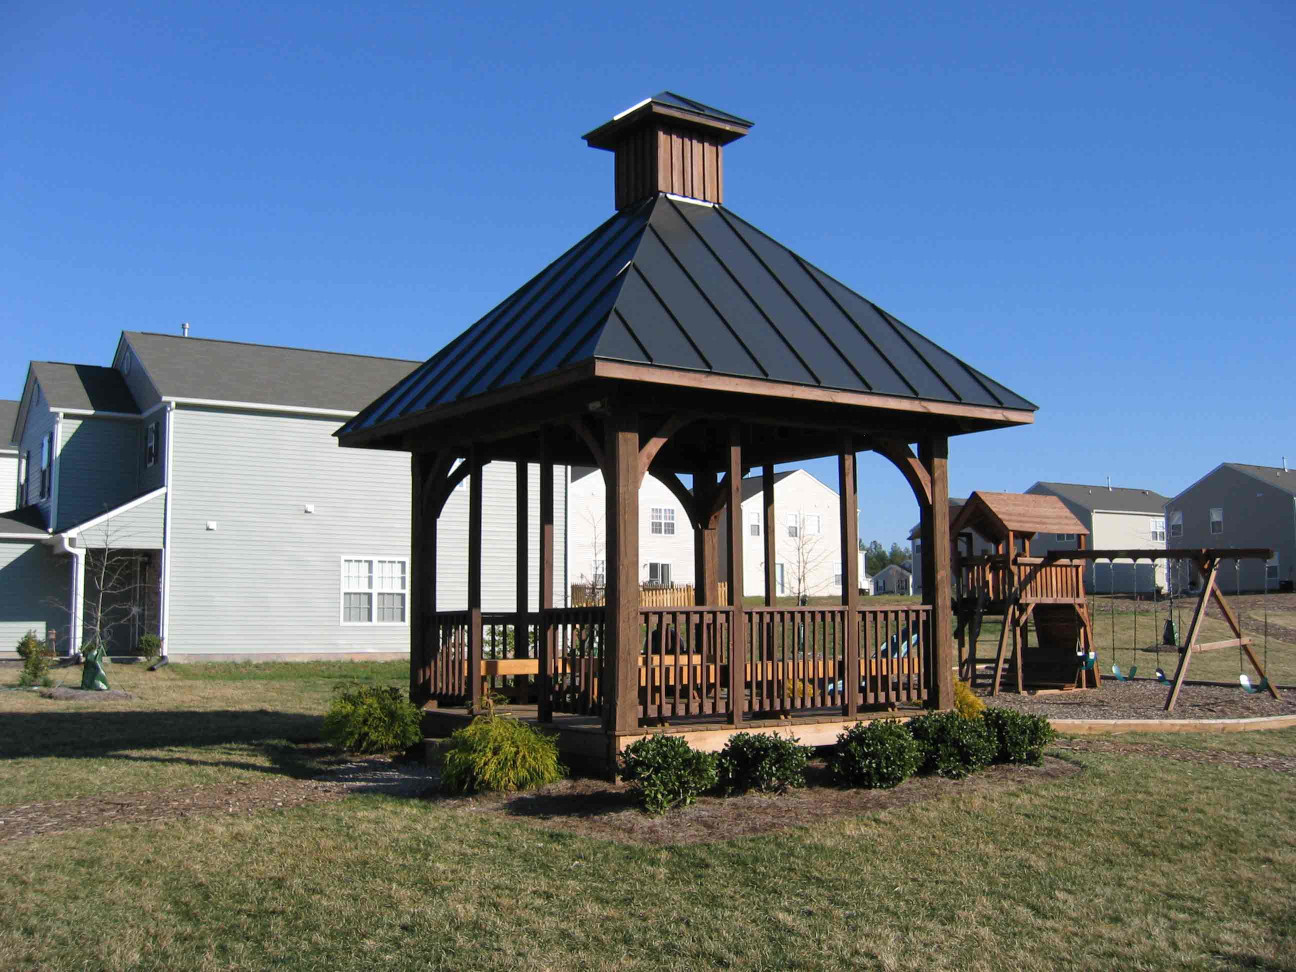 This Gazebo Kit with wood beams, wood braces, and wood raling looks great in this common area.